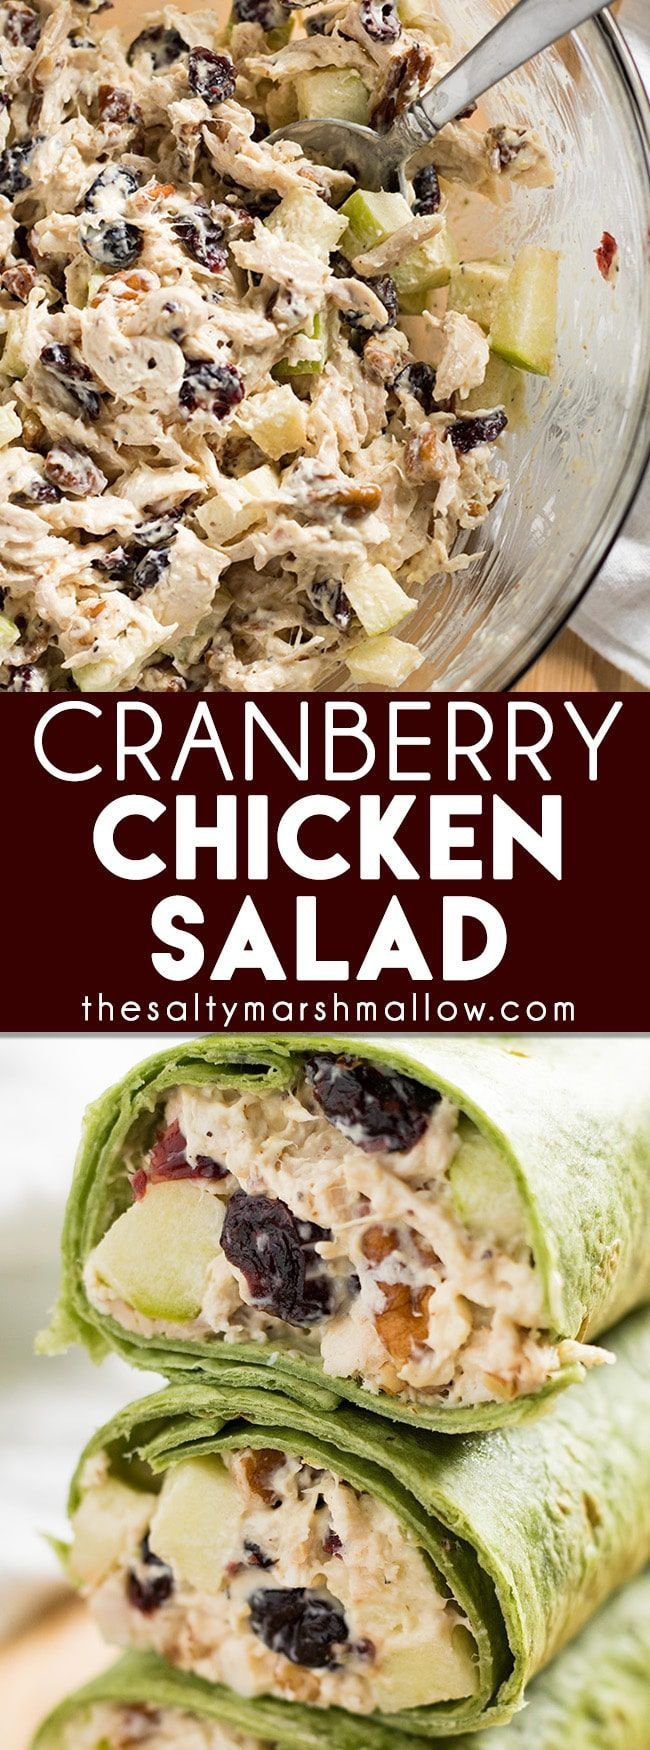 Cranberry Chicken Salad – The best ever chicken salad that is full of cranberries, apples, and pecans! This chicken salad makes the perfect wrap or sandwich for a light fall lunch or dinner!